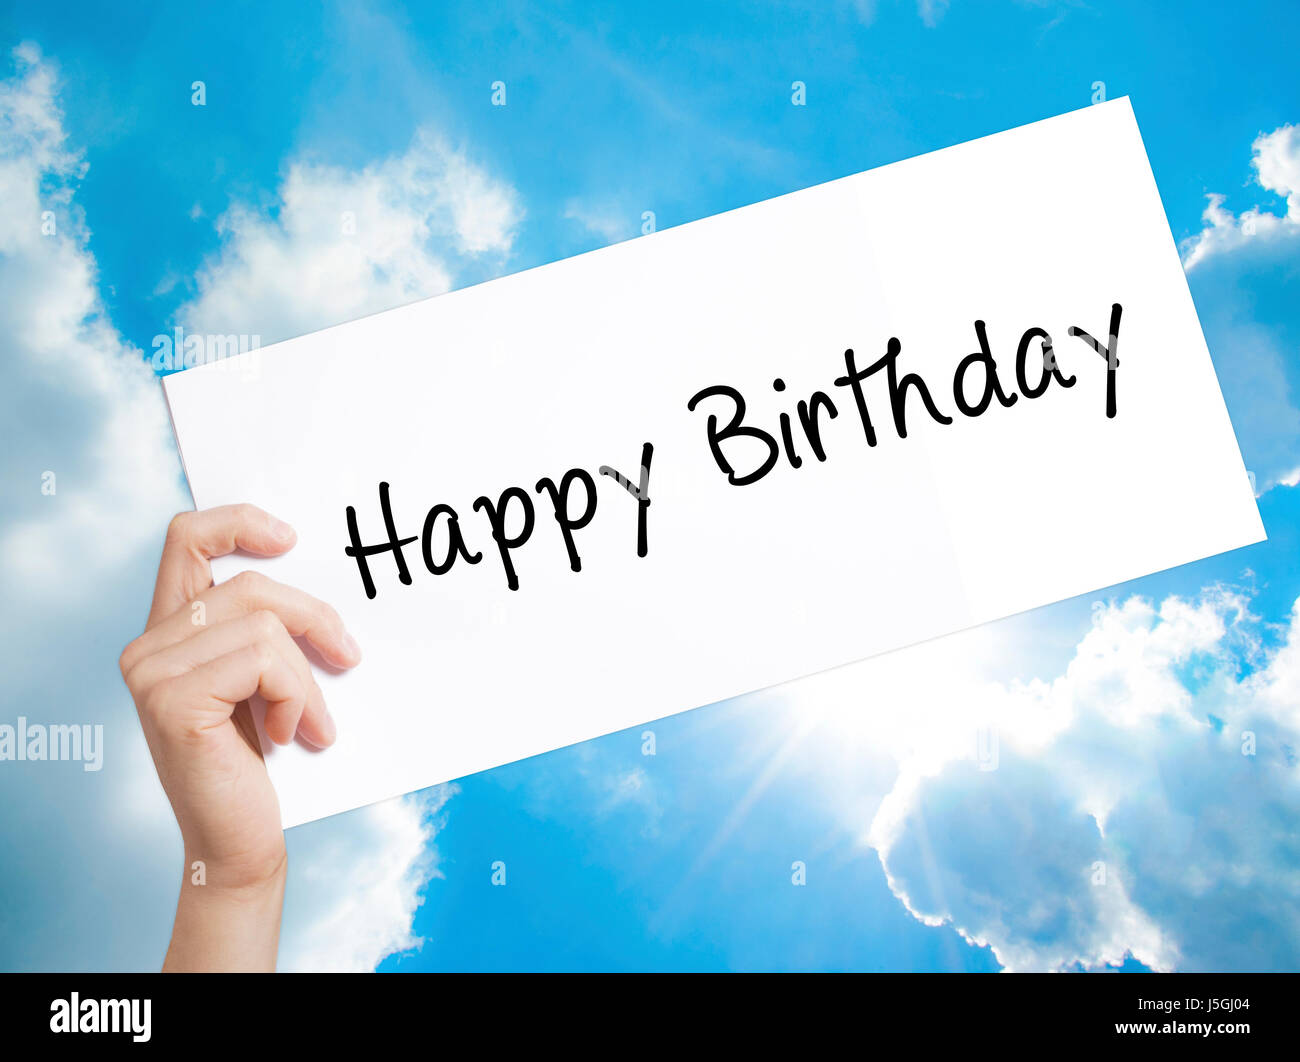 Happy Birthday Sign On White Paper Man Hand Holding Paper With Text Stock Photo Alamy